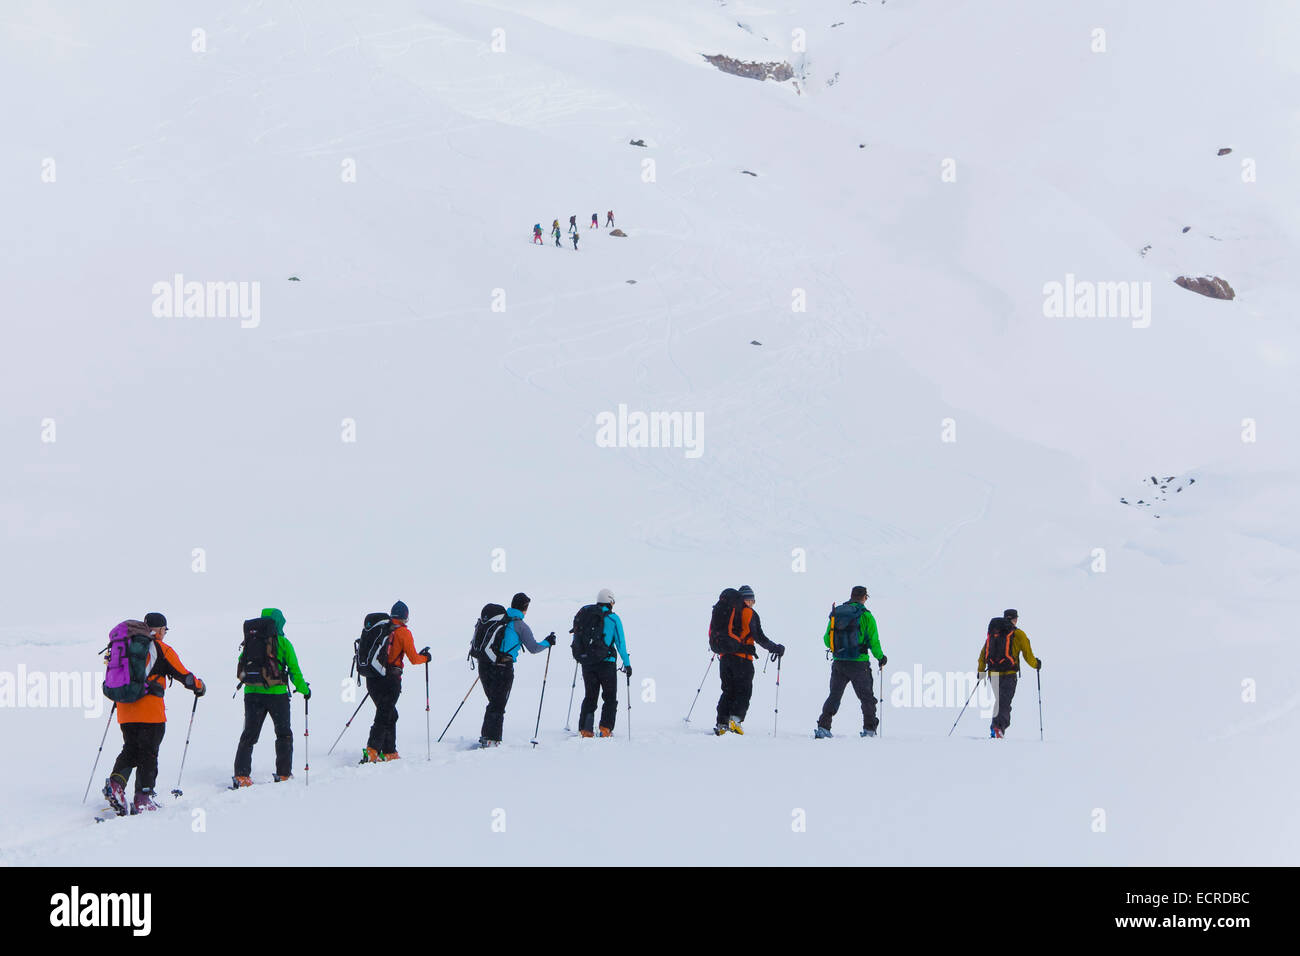 ALPINE TOURING, SKITOURING AT TOP OF JULIERPASS, GRISONS, SWITZERLAND - Stock Image